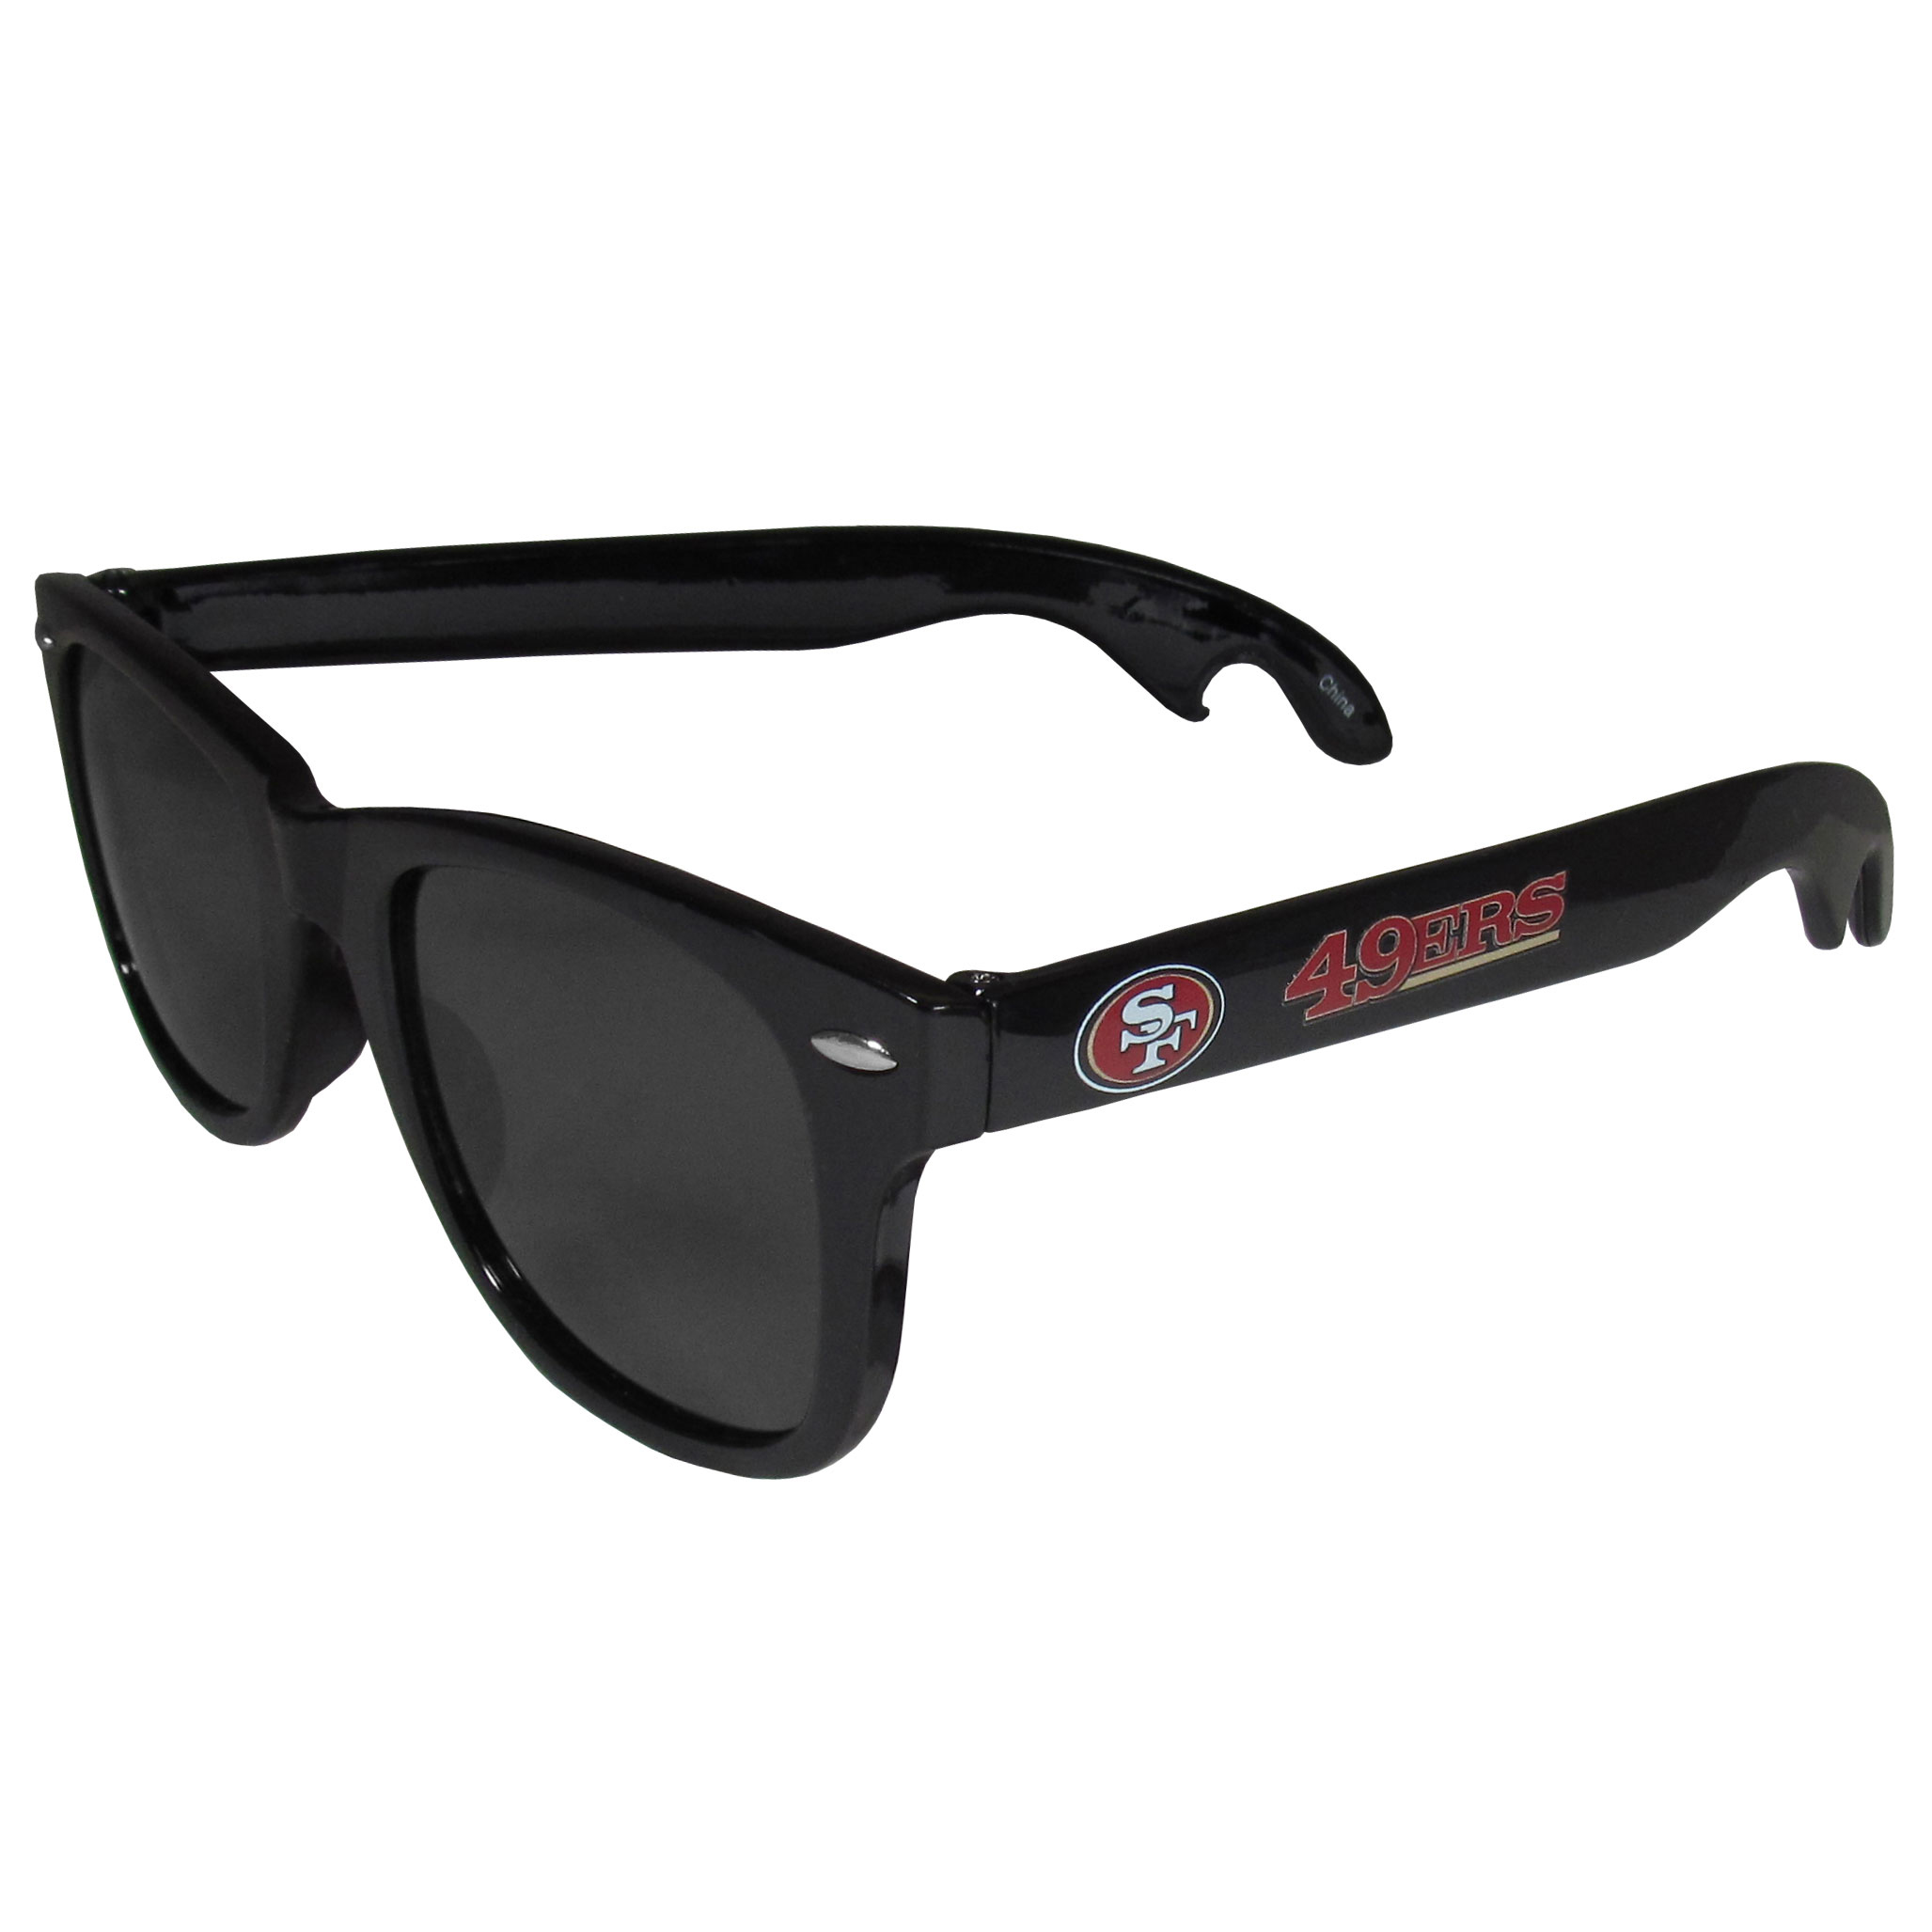 San Francisco 49ers Beachfarer Bottle Opener Sunglasses - Seriously, these sunglasses open bottles! Keep the party going with these amazing San Francisco 49ers bottle opener sunglasses. The stylish retro frames feature team designs on the arms and functional bottle openers on the end of the arms. Whether you are at the beach or having a backyard BBQ on game day, these shades will keep your eyes protected with 100% UVA/UVB protection and keep you hydrated with the handy bottle opener arms.